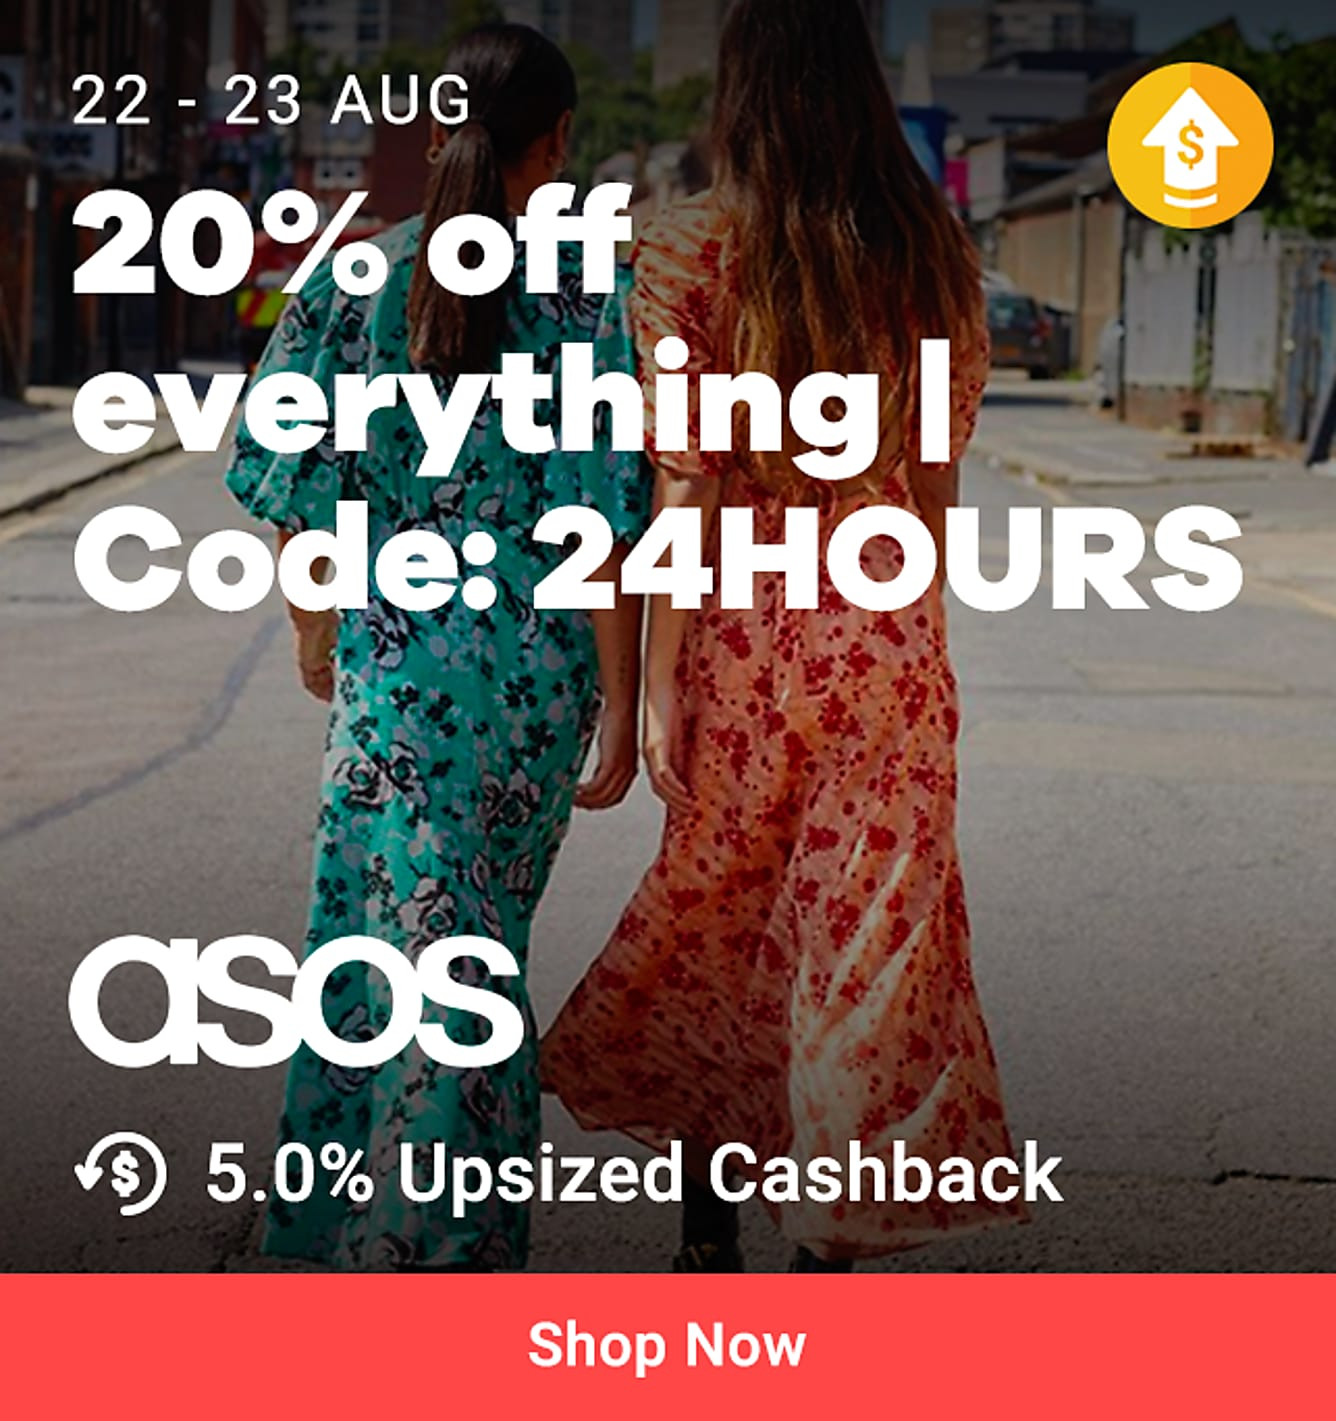 "ASOS 22 Aug 3pm - 23 Aug 3pm: 20% off everything code ""24HOURS"" + 5% upsized Cashback (was 3.5%)"